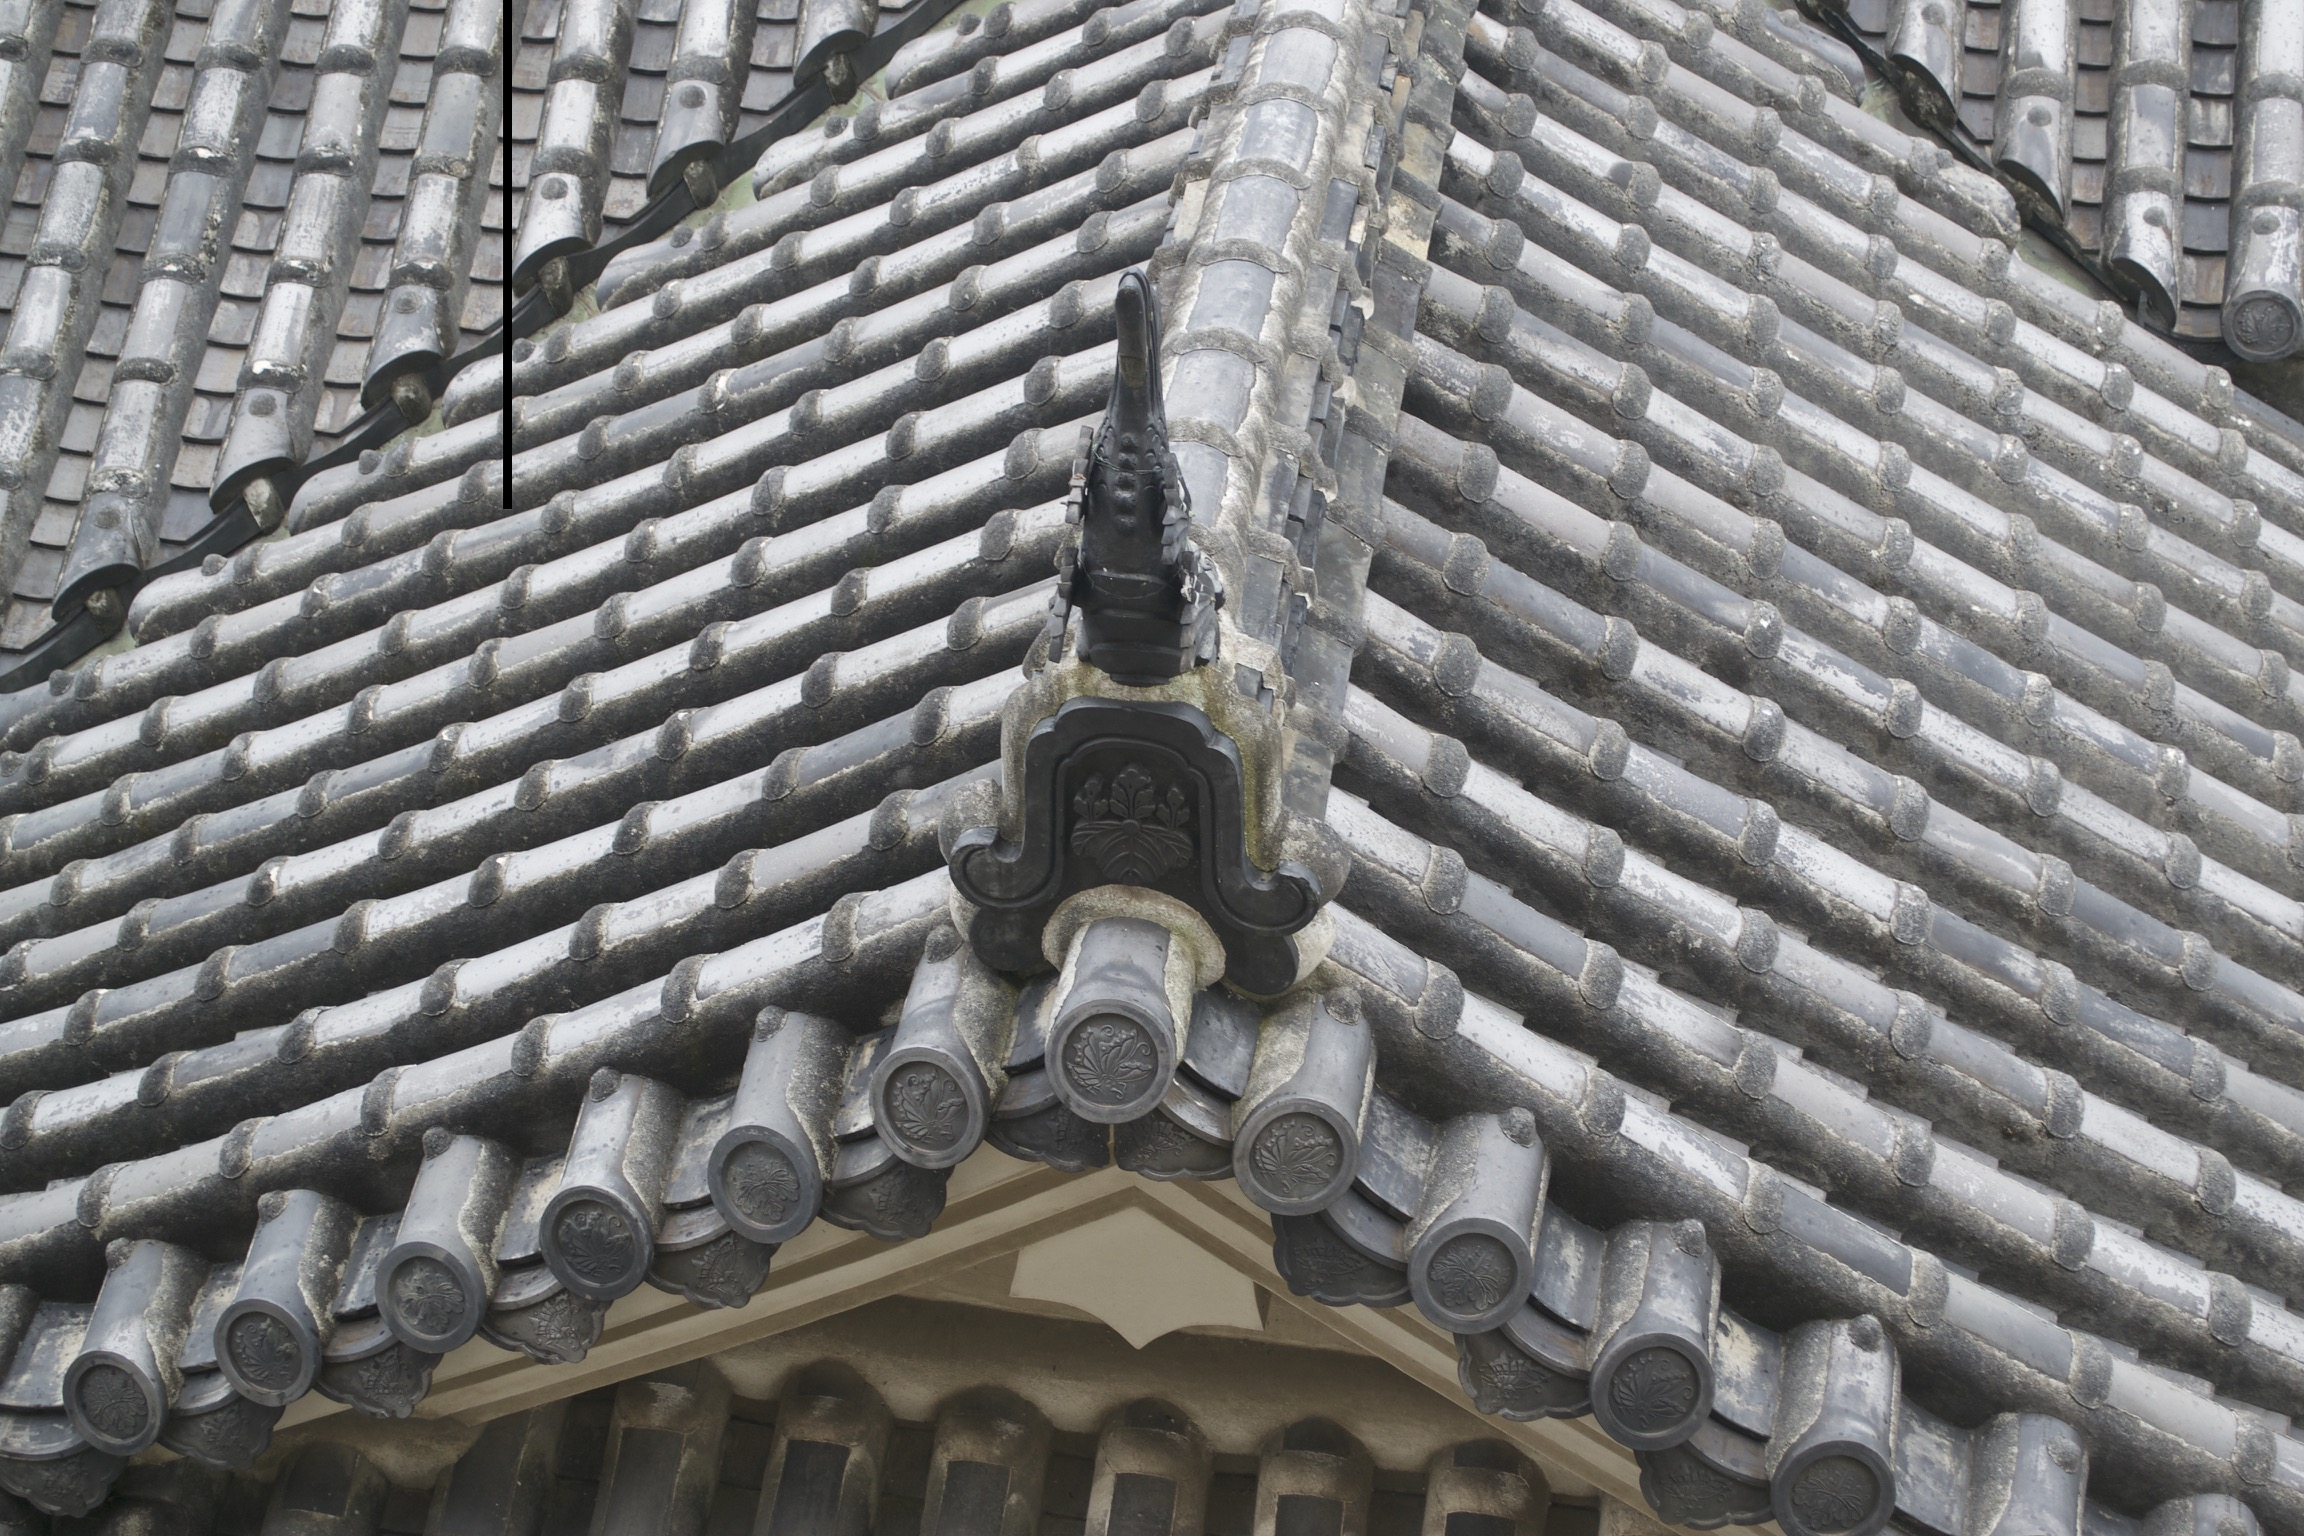 Hand-made cylindrical cermaic tiles cover a roof.